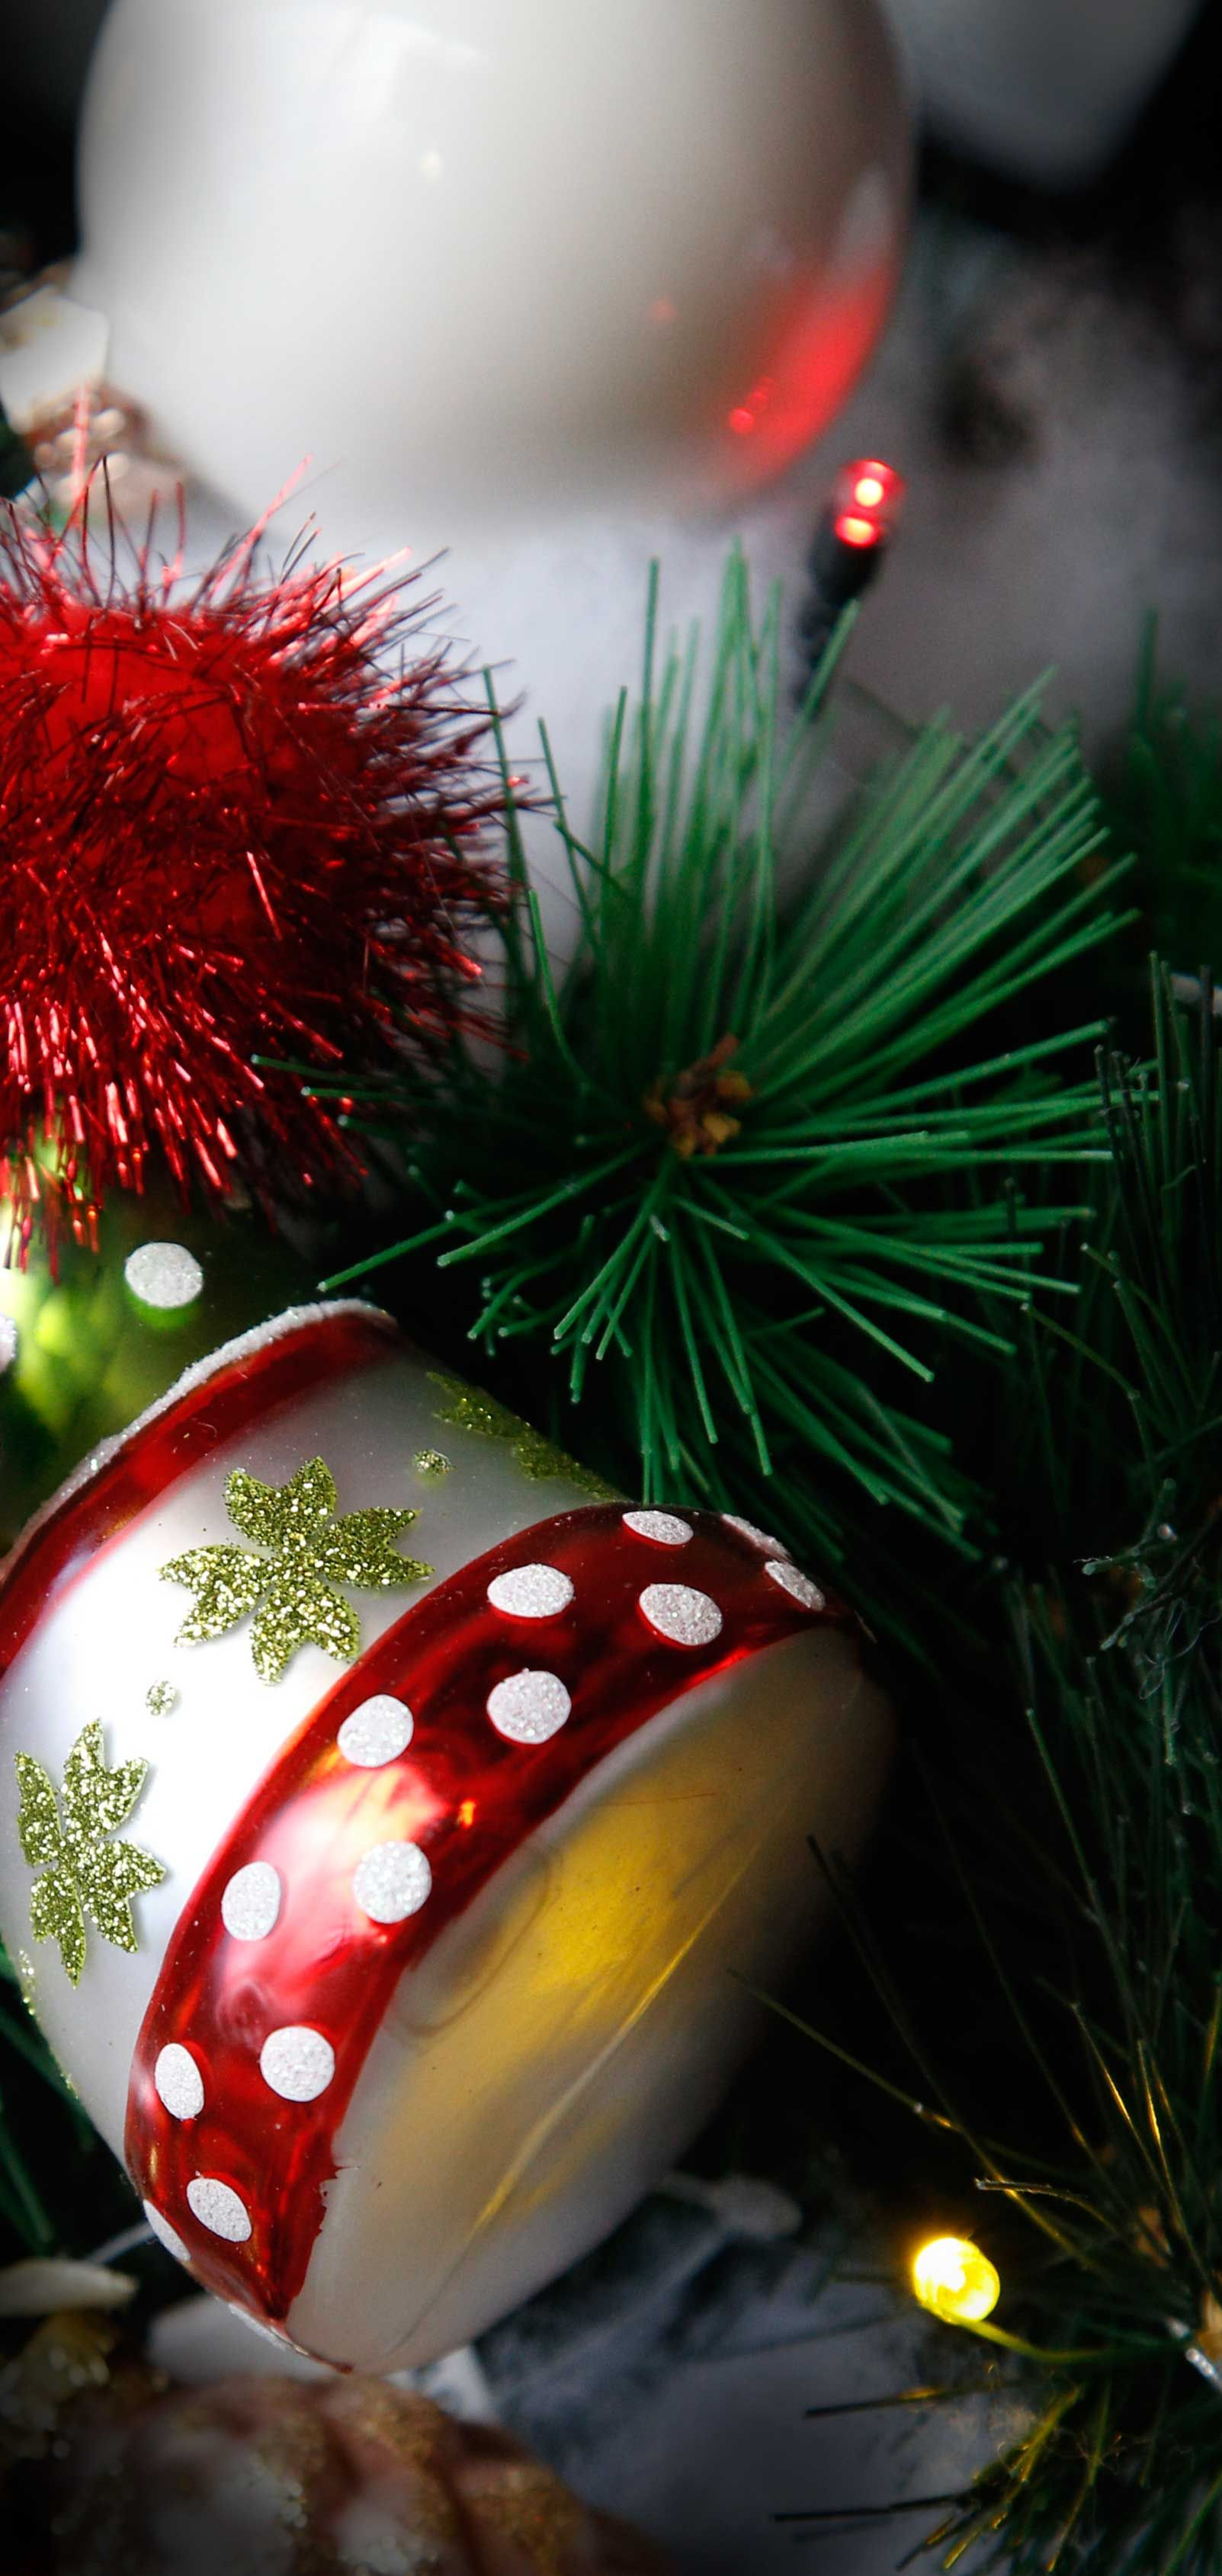 Reject ordinary ornaments, choose #Agricola selections! #KatherineCollection #Christmas